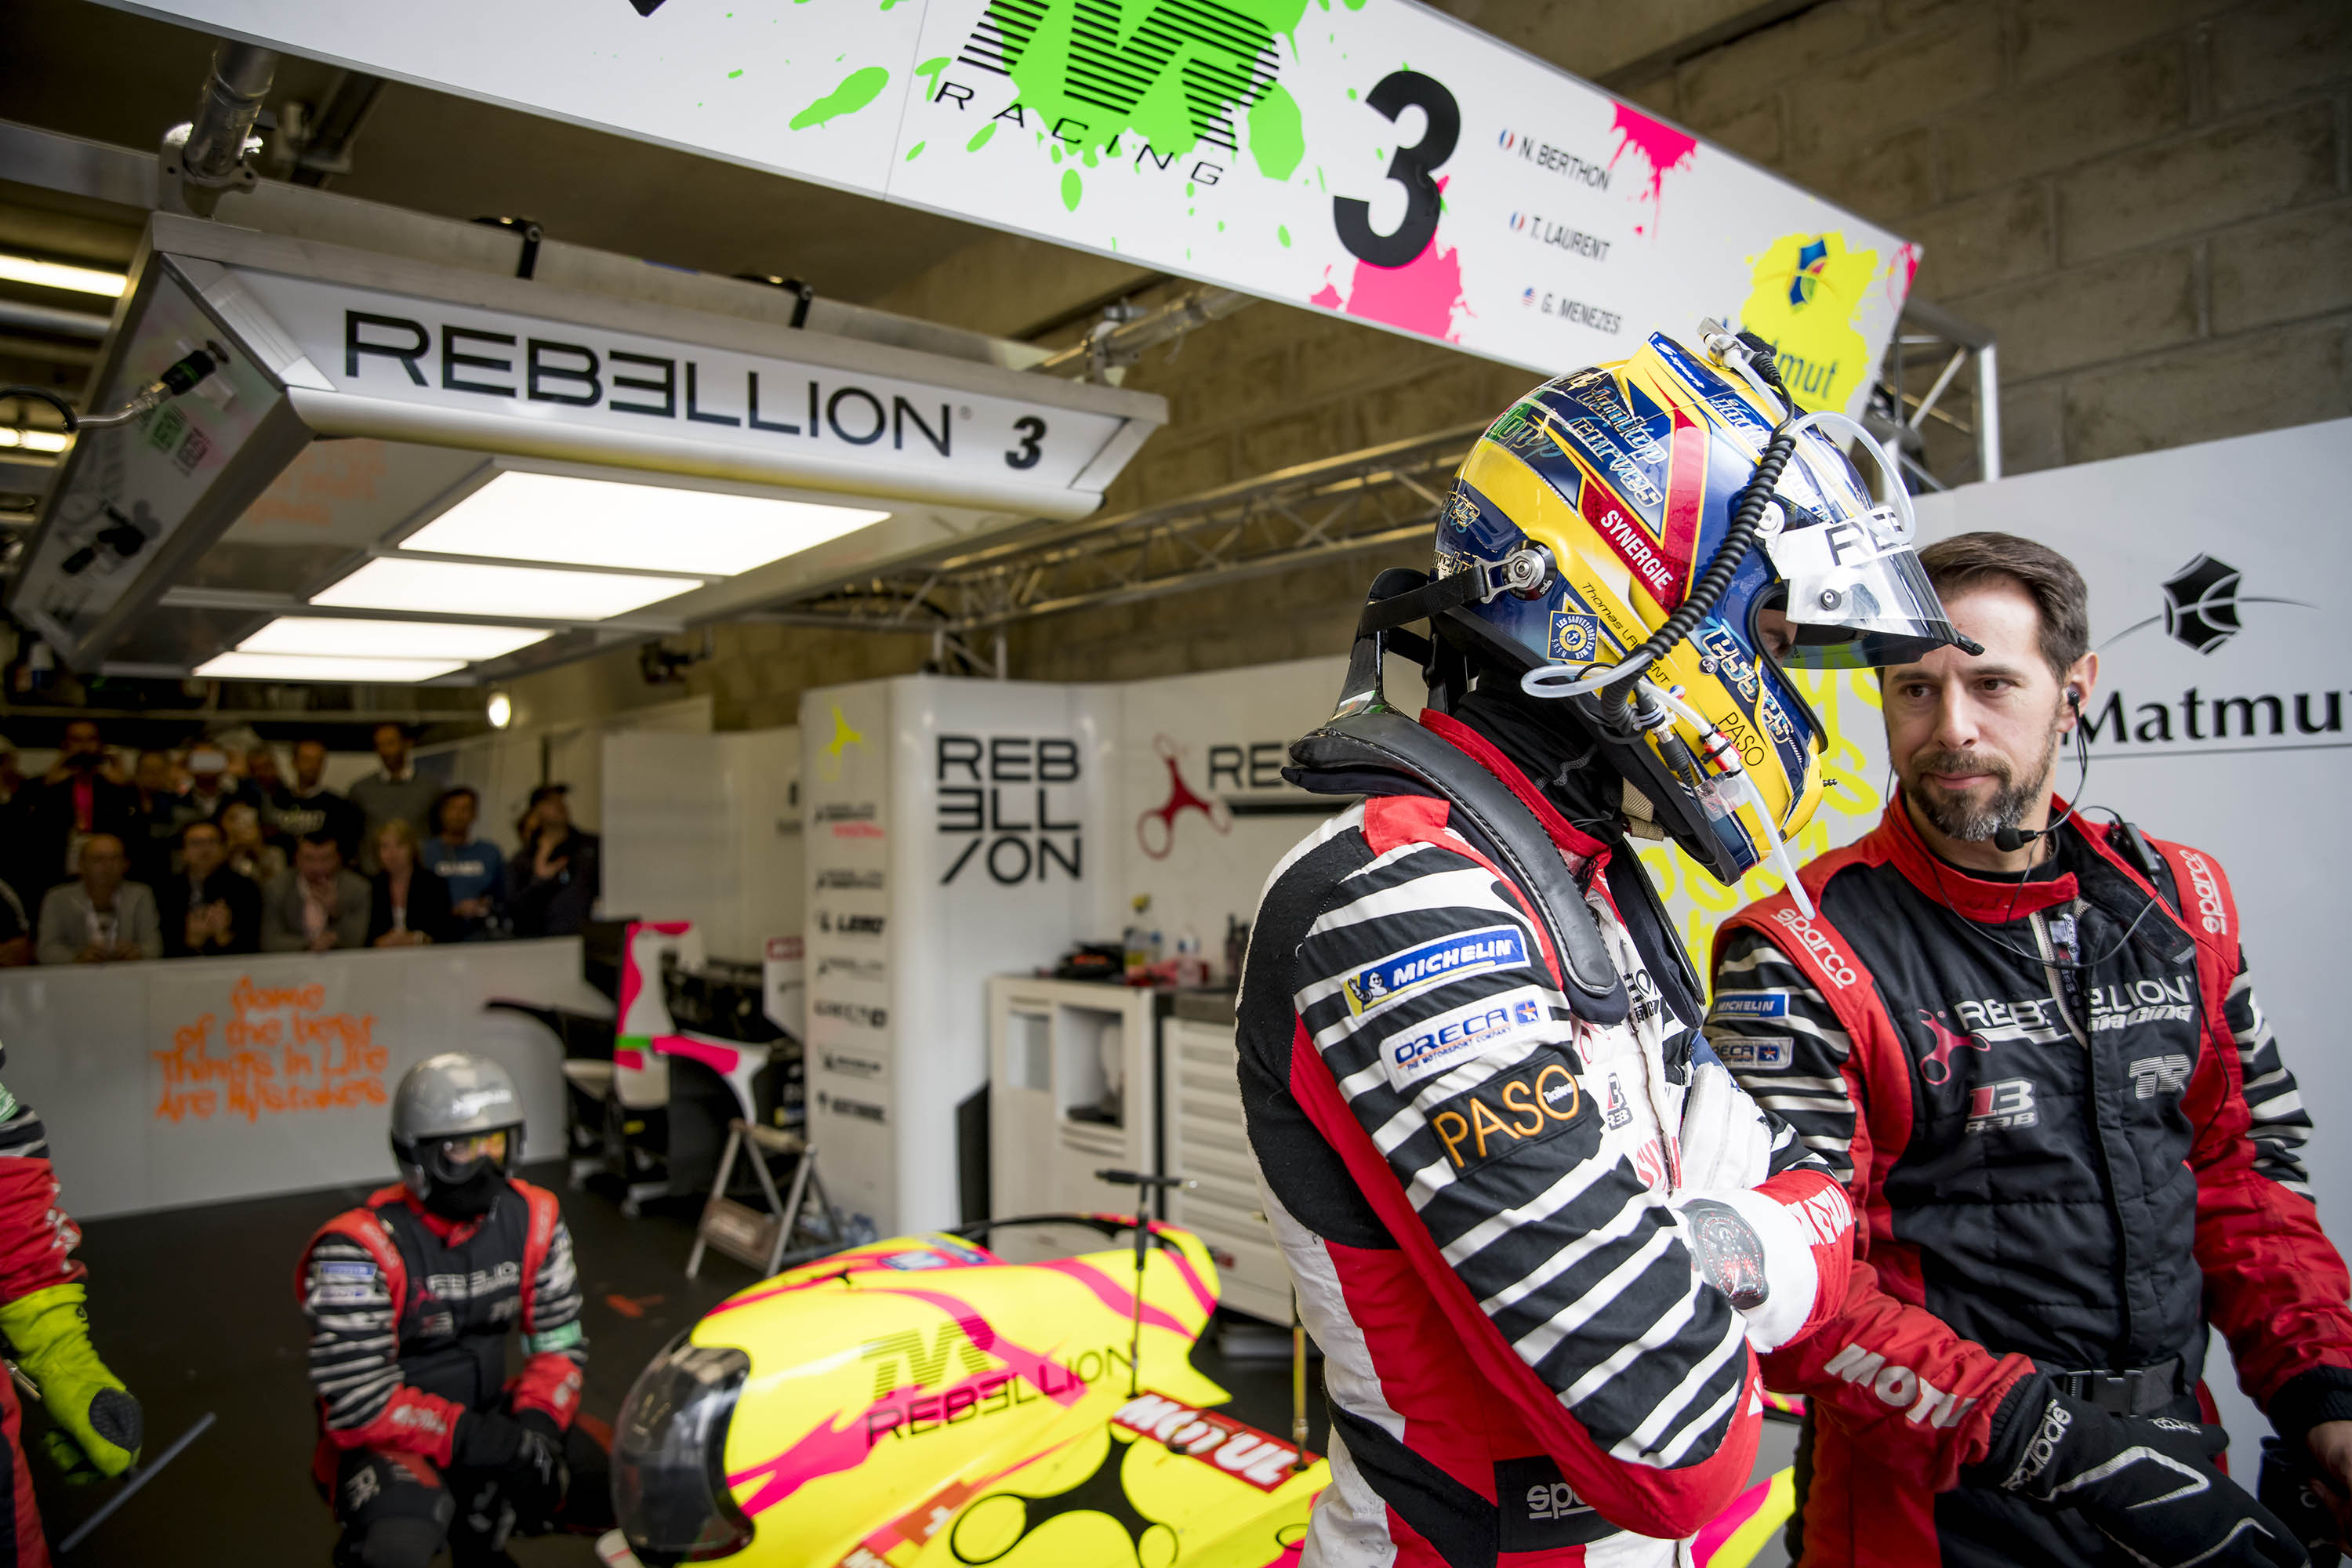 MRS_Rebellion_LeMans2019_03004